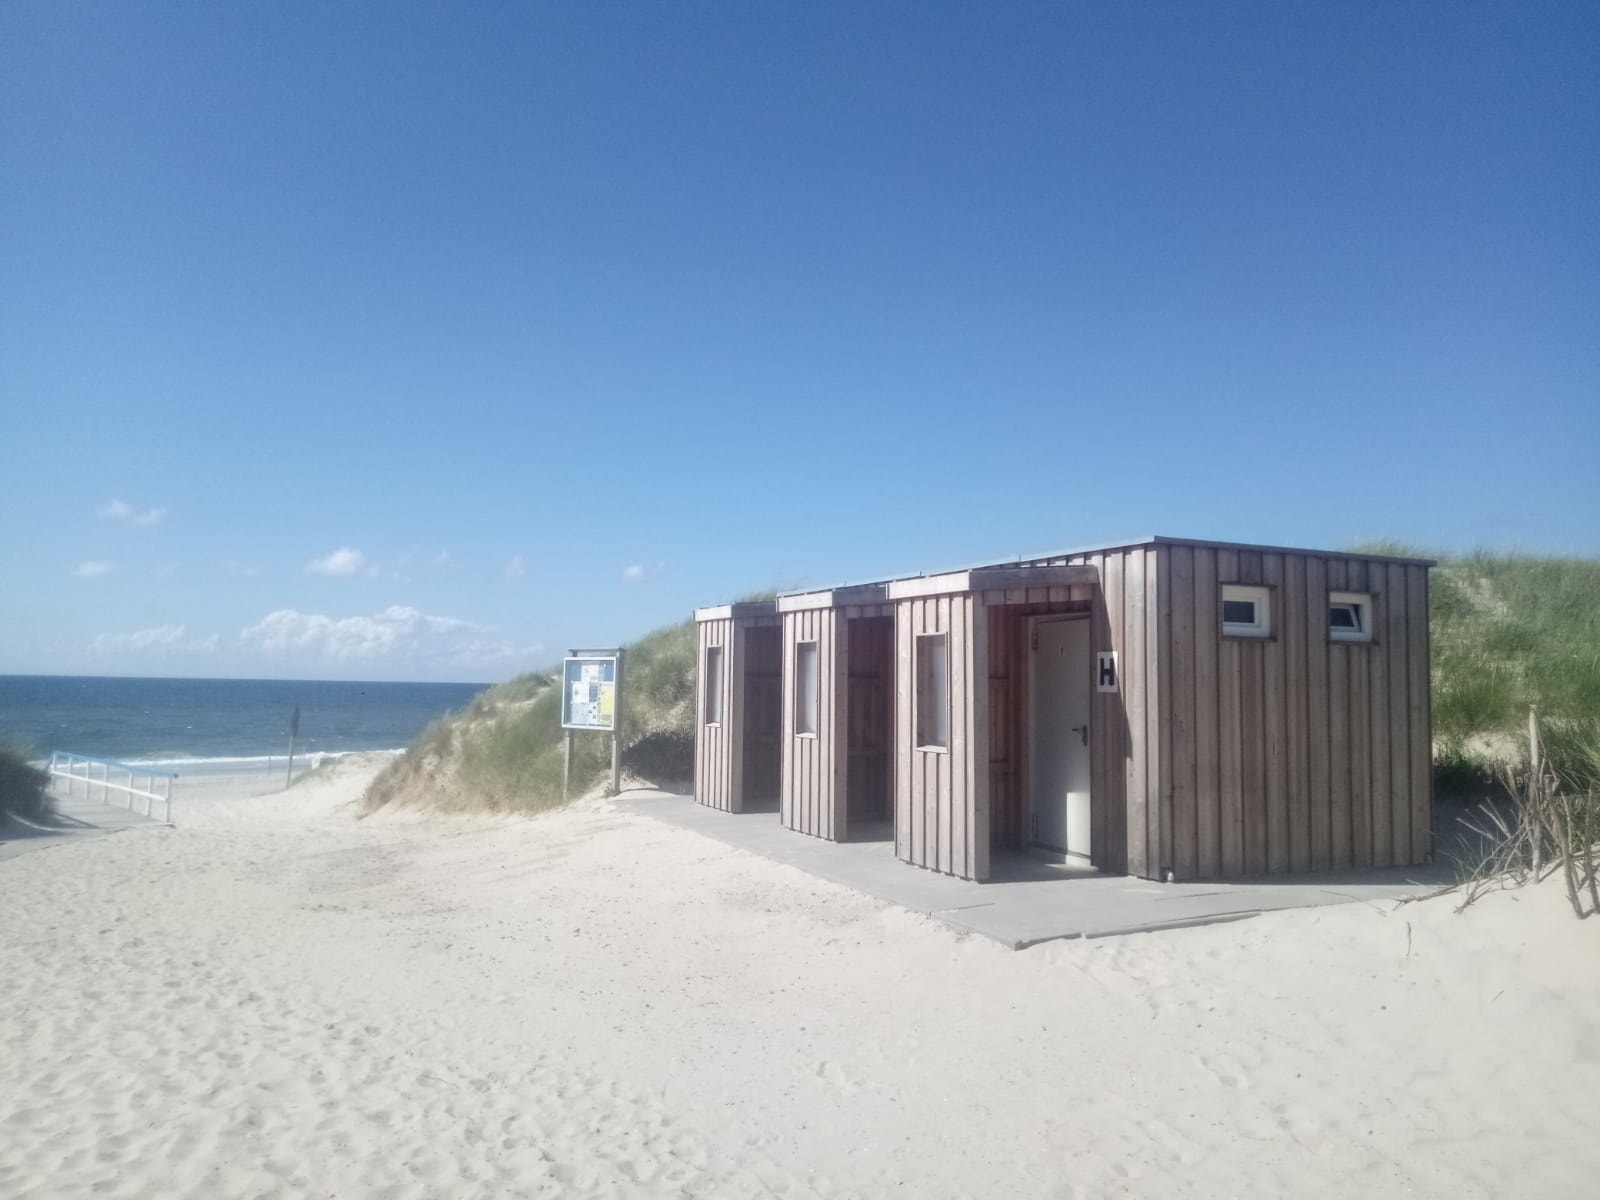 Toiletten am FKK-Strand